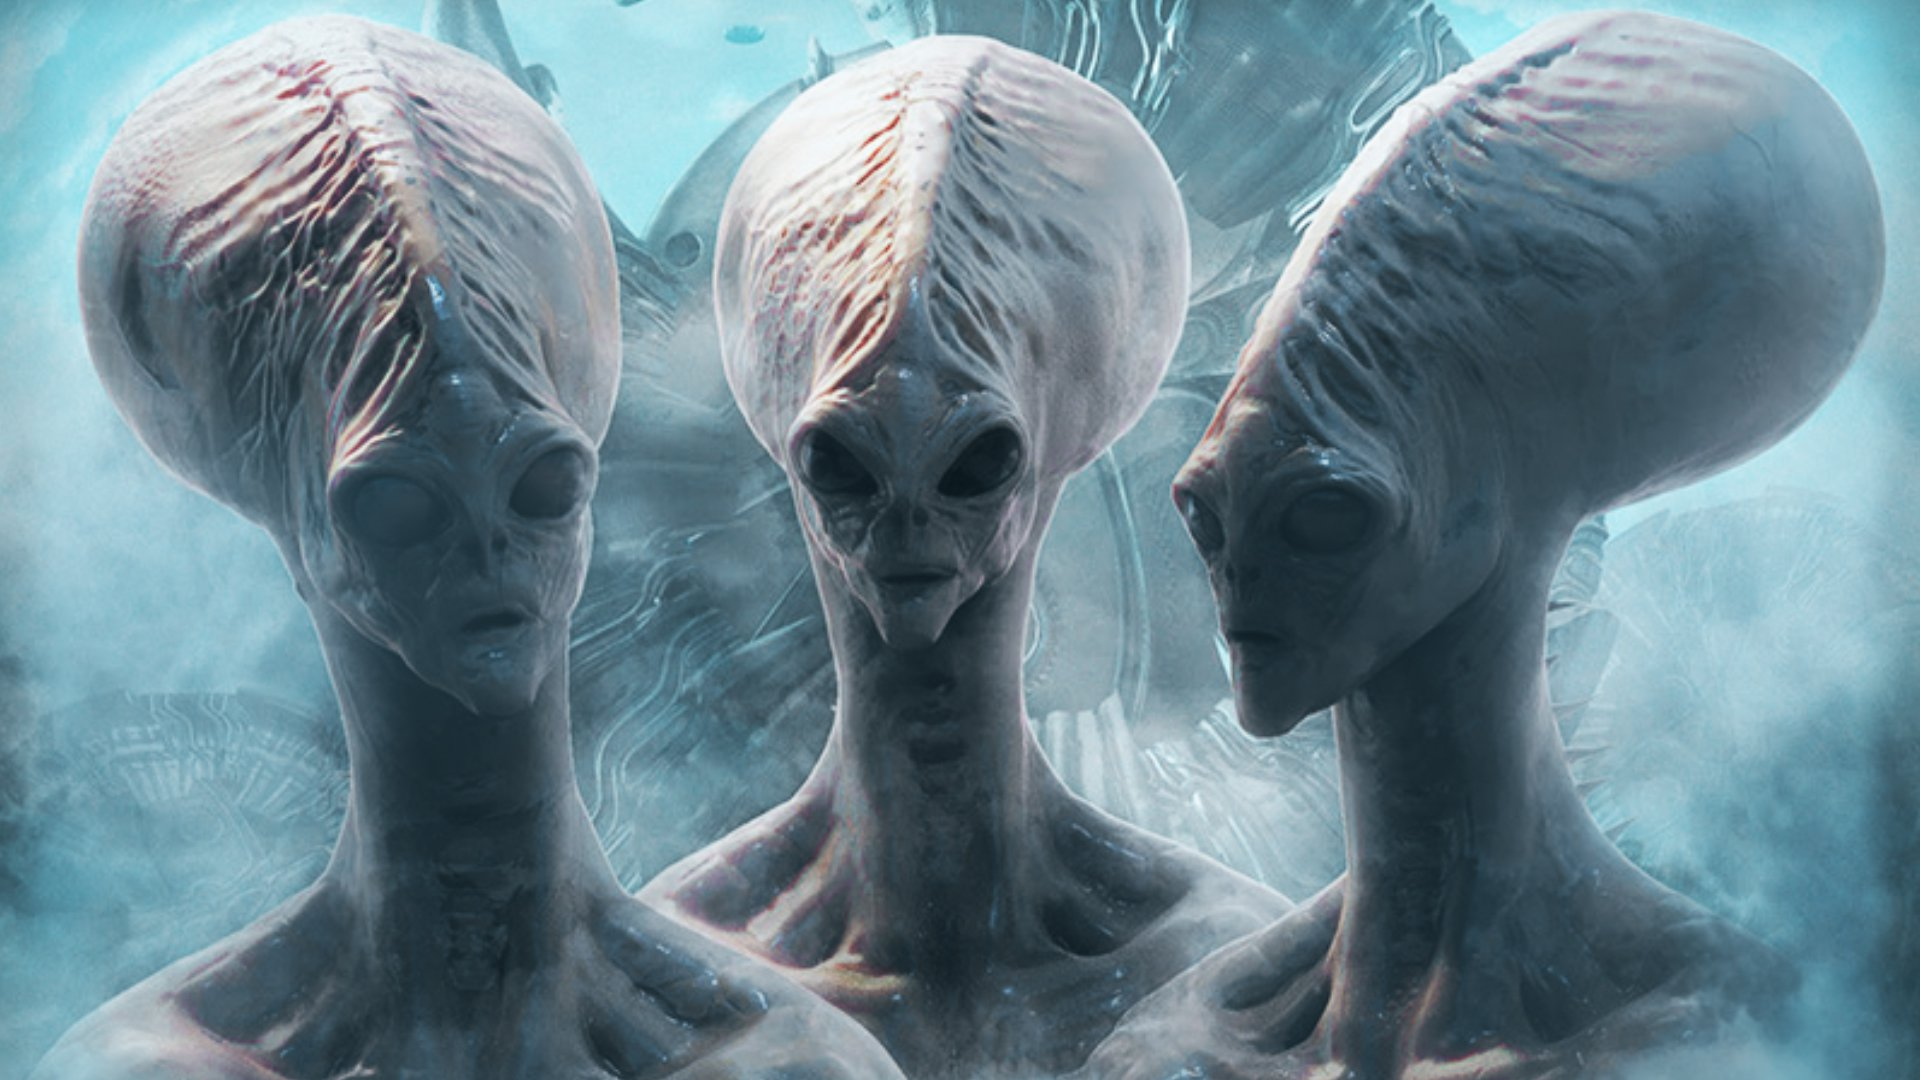 walppapers-hd-de-aliens-alegorias (8)